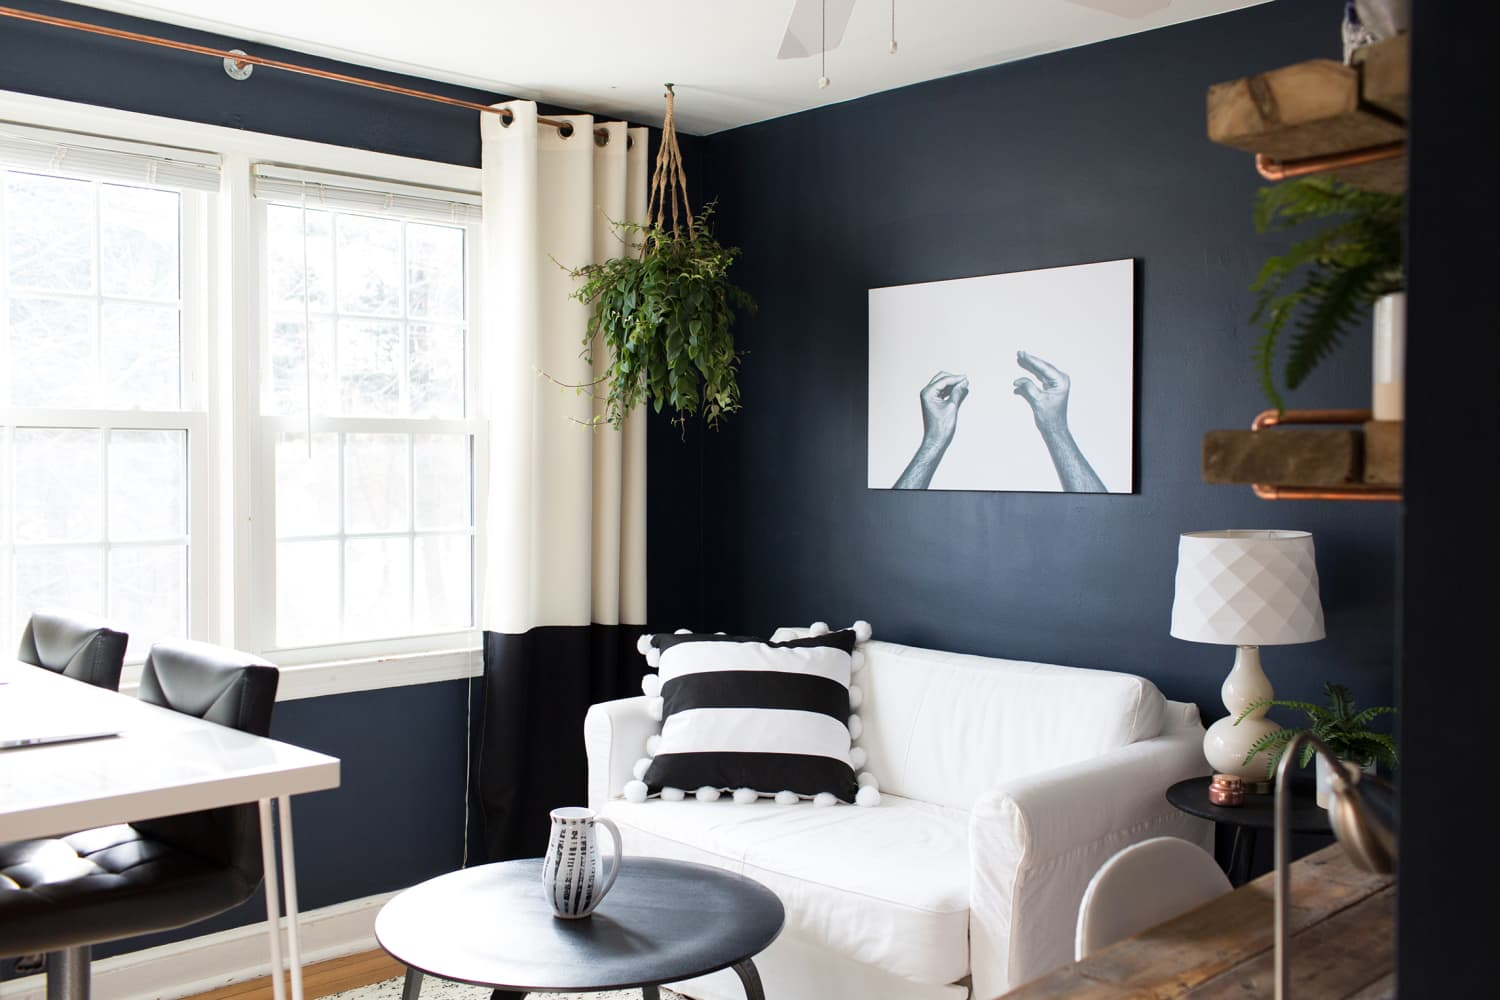 These Are the Most Popular Paint Colors, According to Instagram